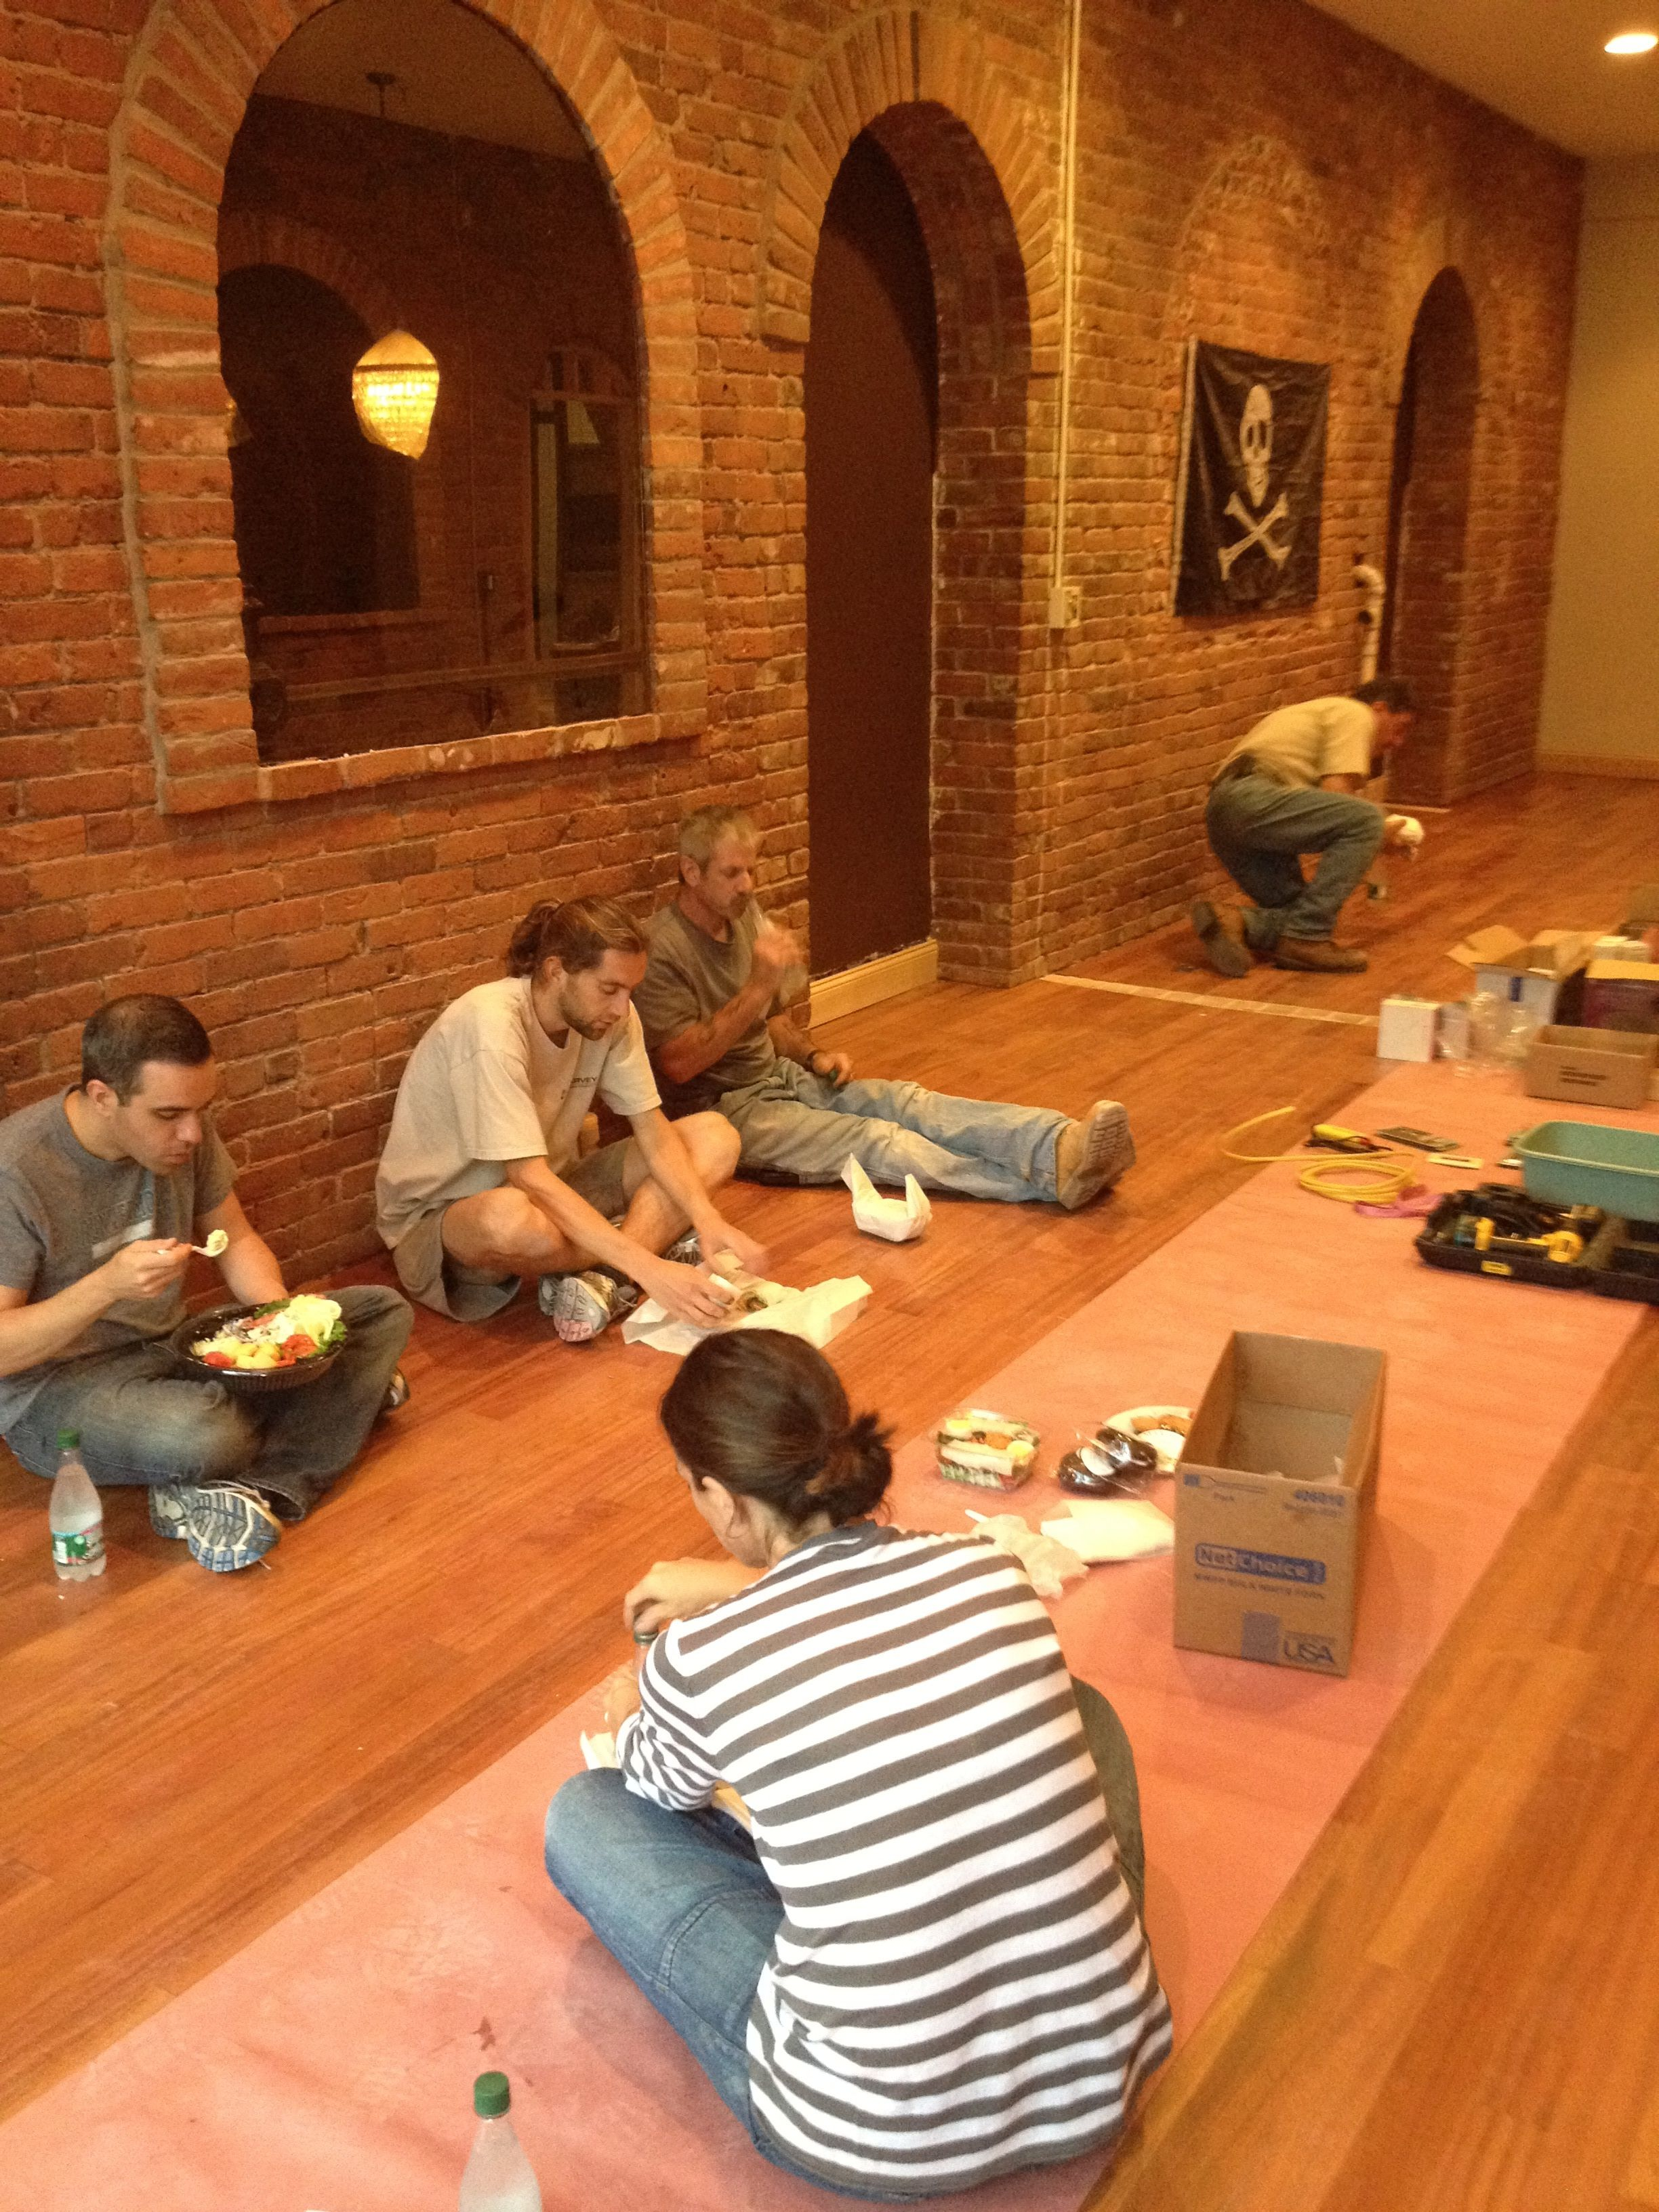 Lunch with the crew on the new floor.